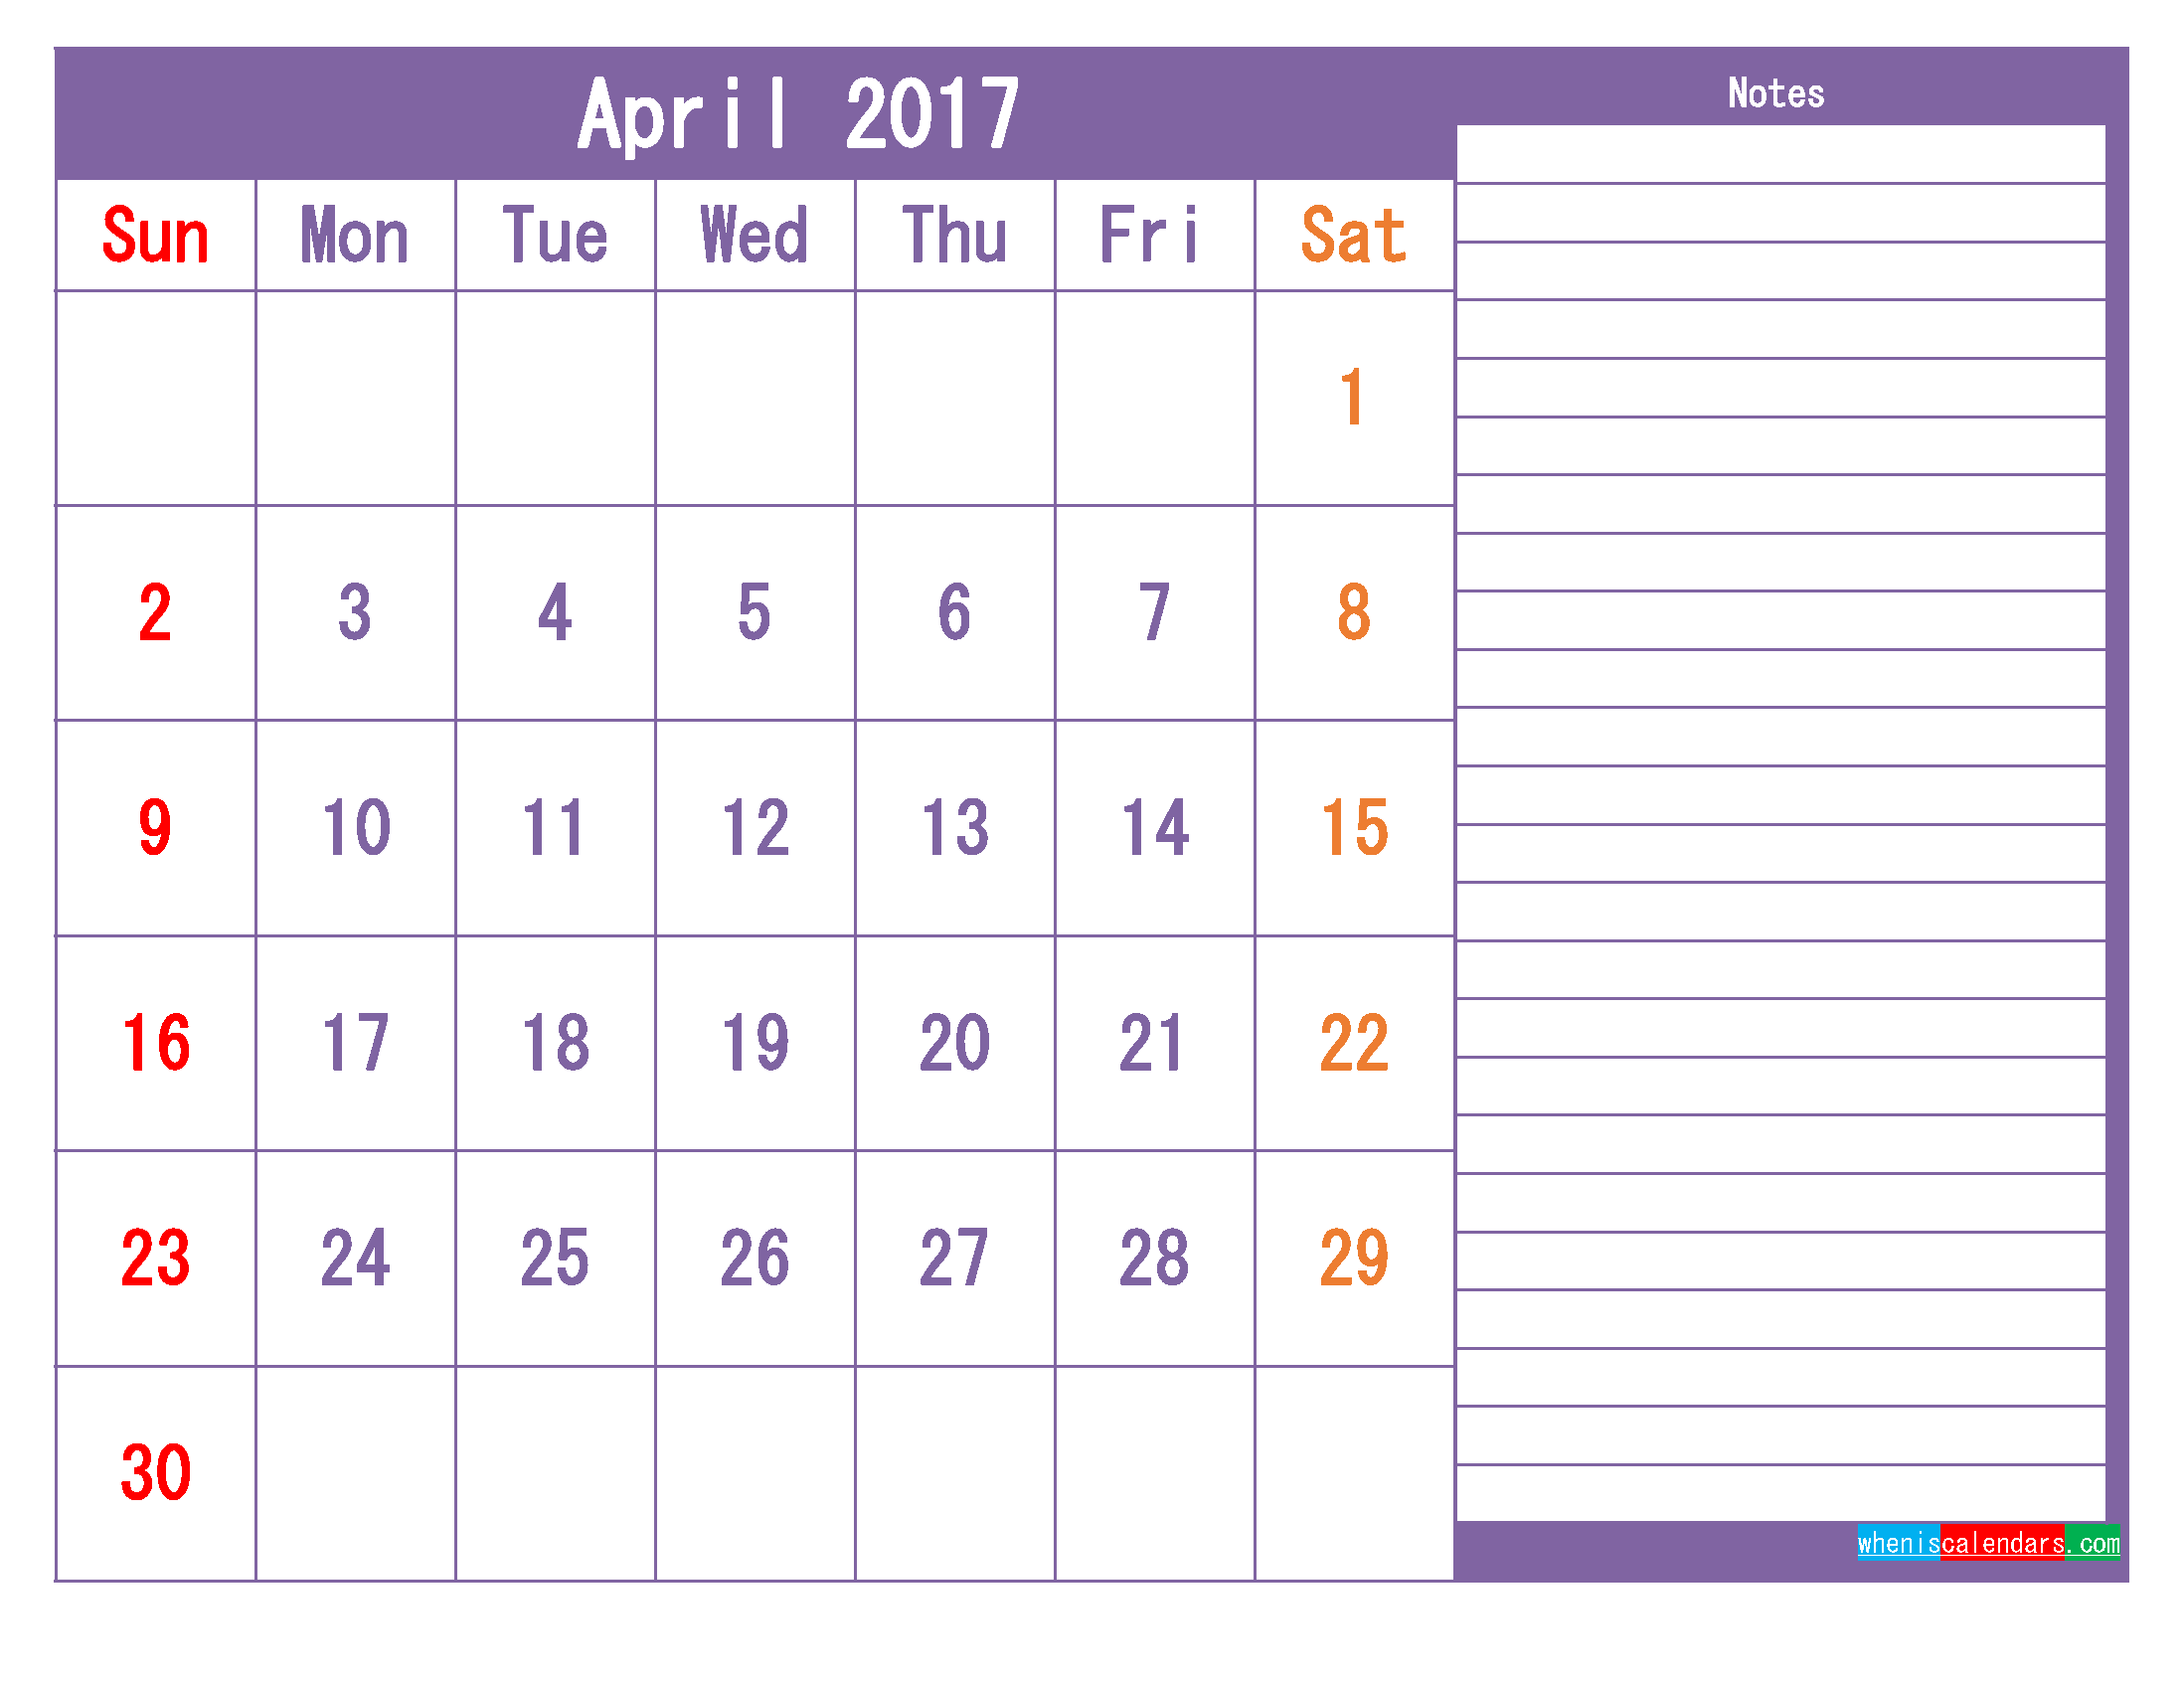 April 2017 Printable Calendar Template as PDF and PNG